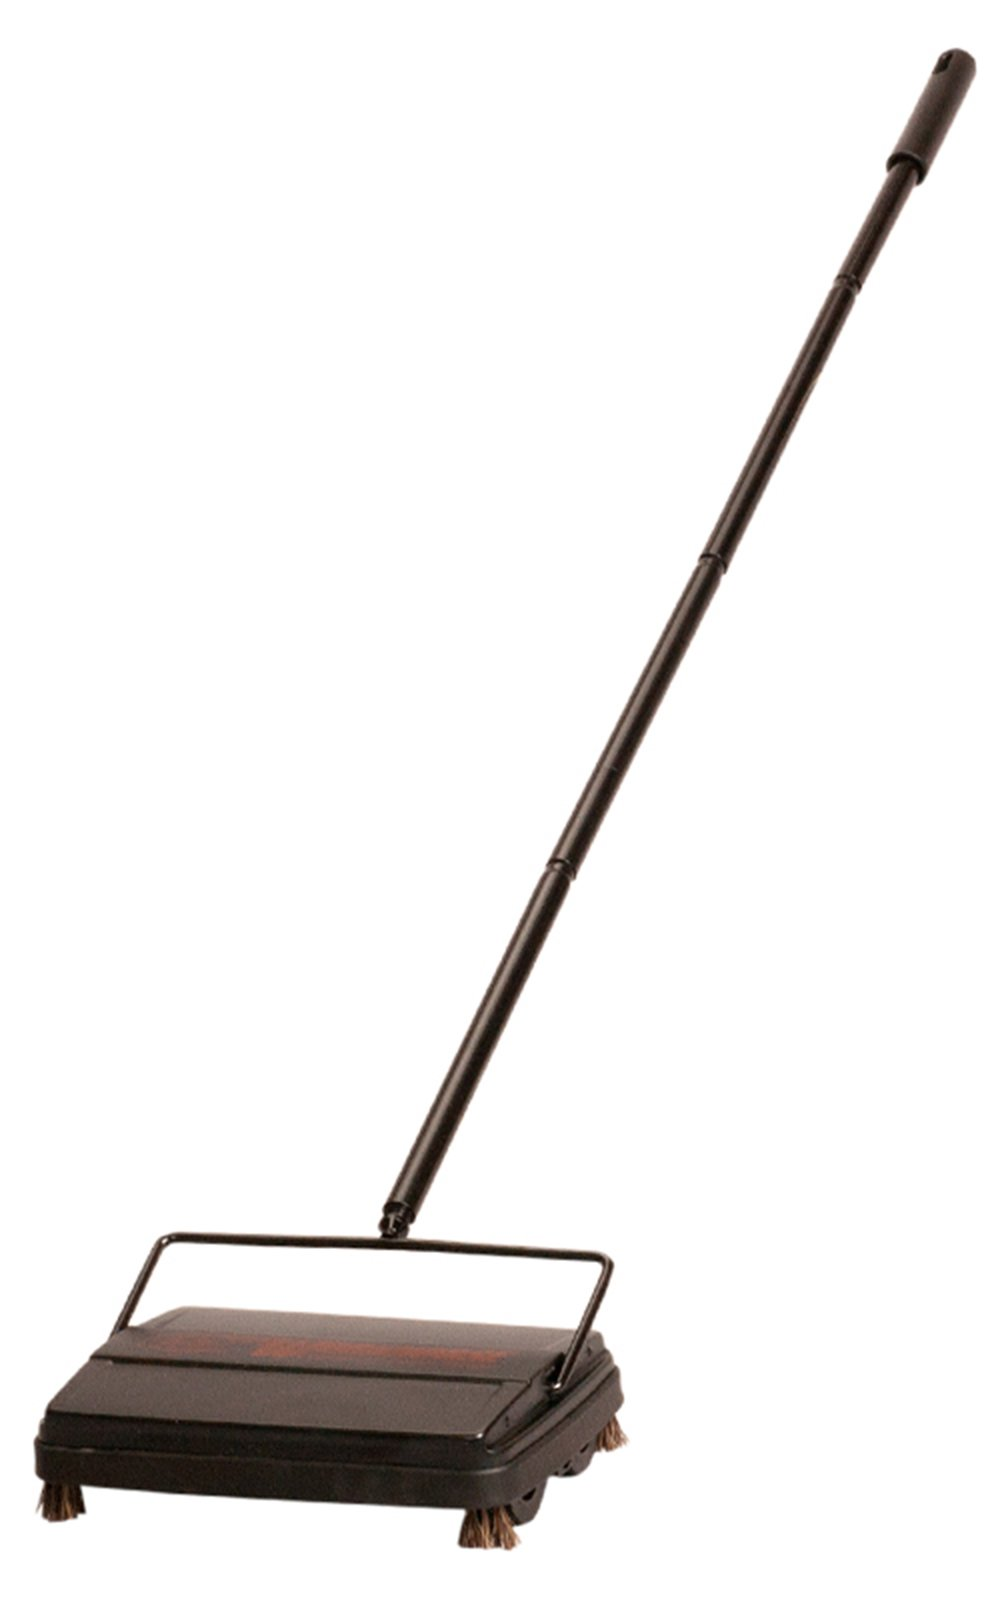 Fuller Commercial Products 39357 Workhorse Carpet Sweeper, 4 Piece Handle with Vinyl Brush by Fuller Commercial Products